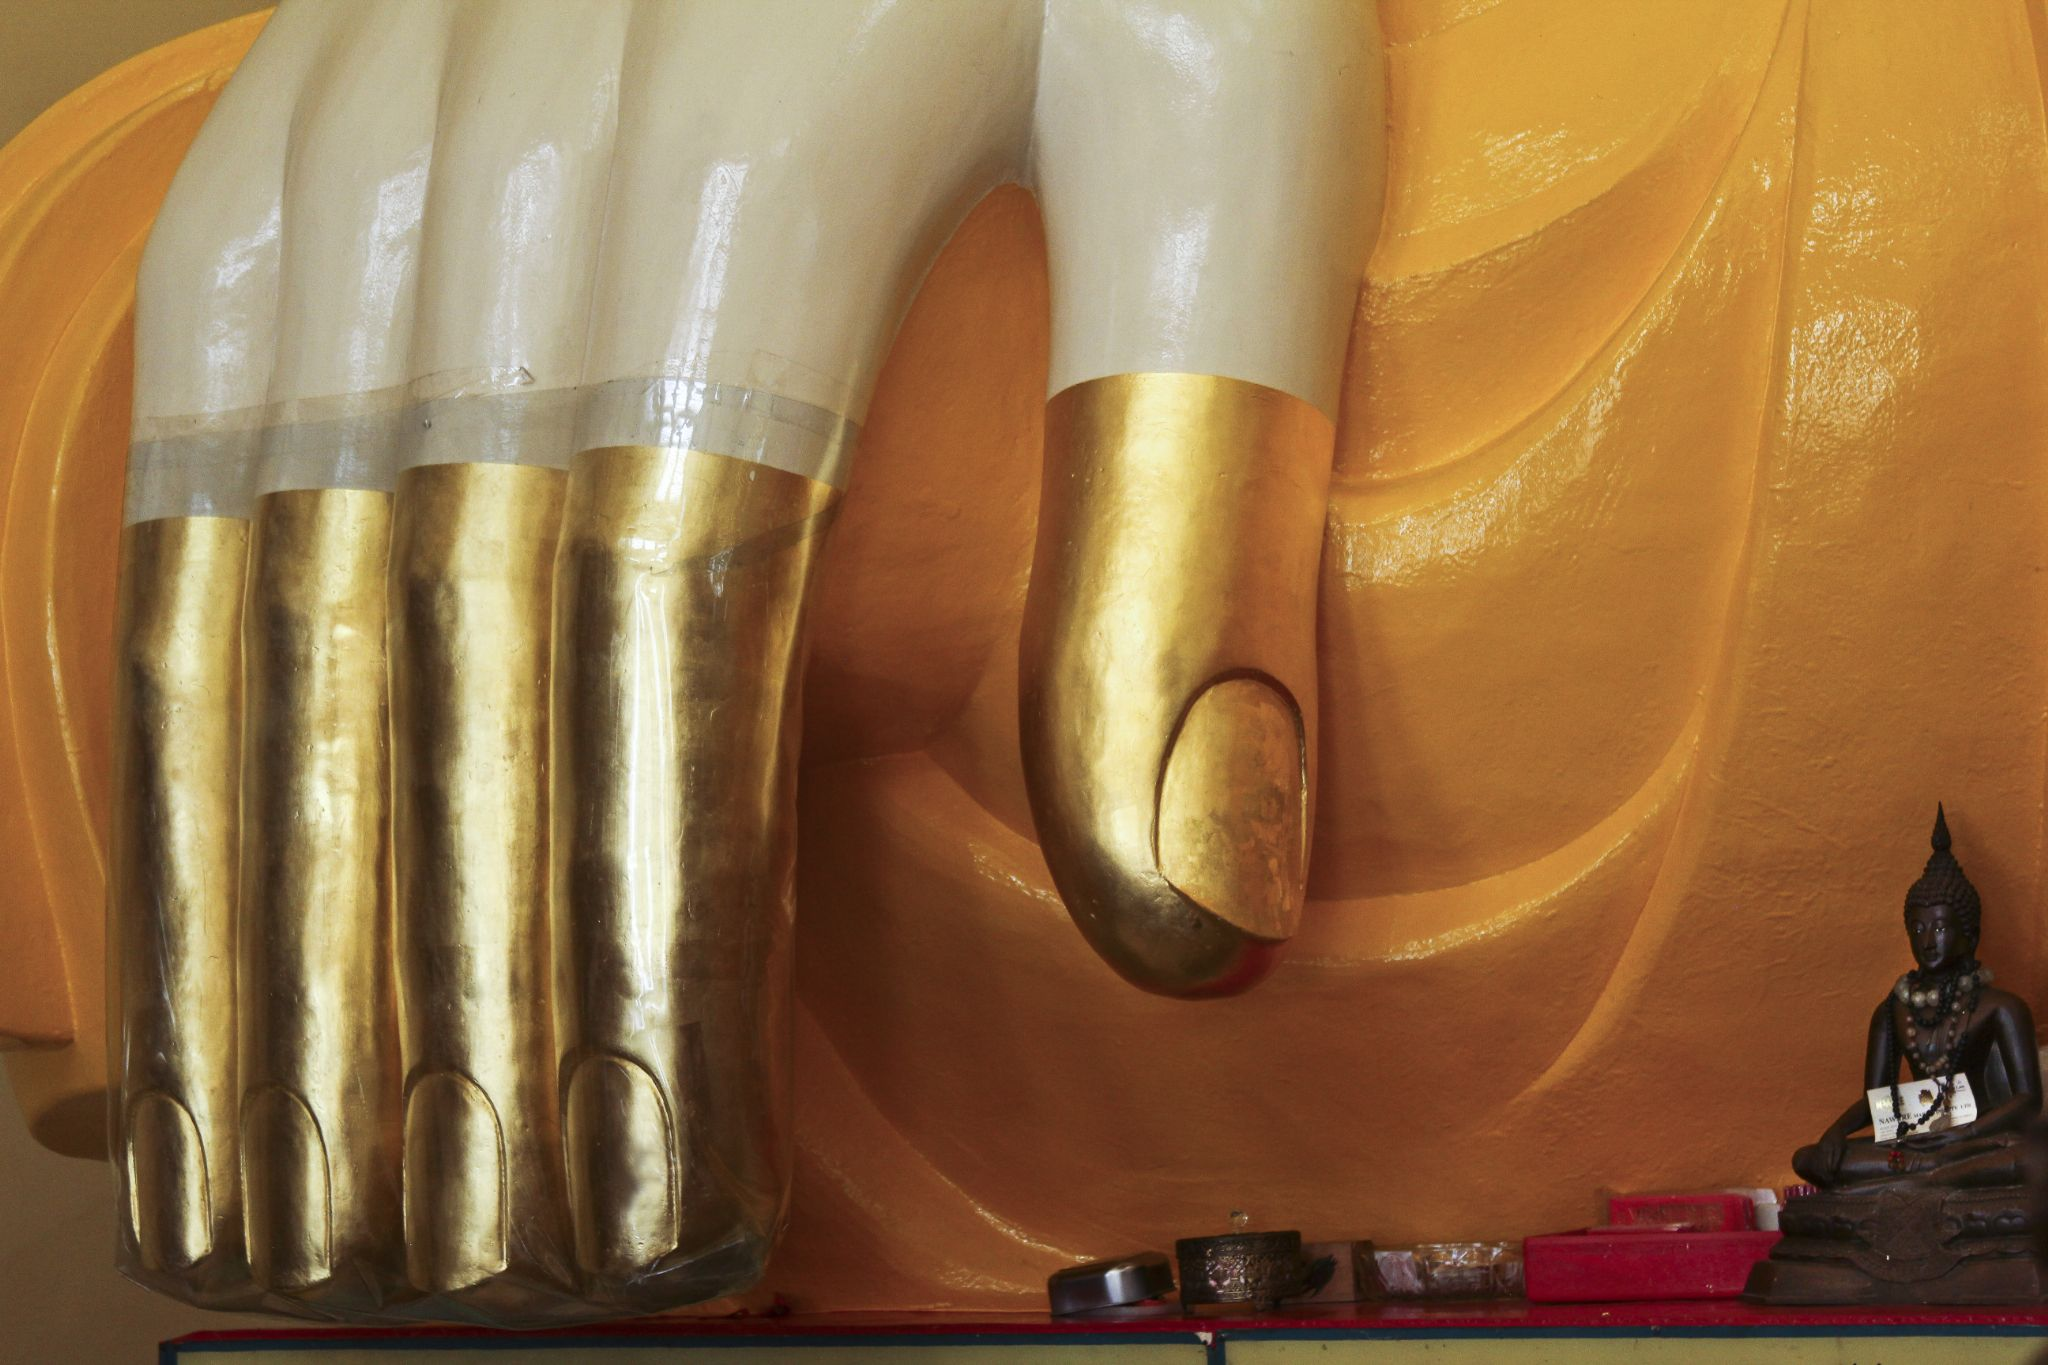 Golden Touch of Buddha by momtaxi711